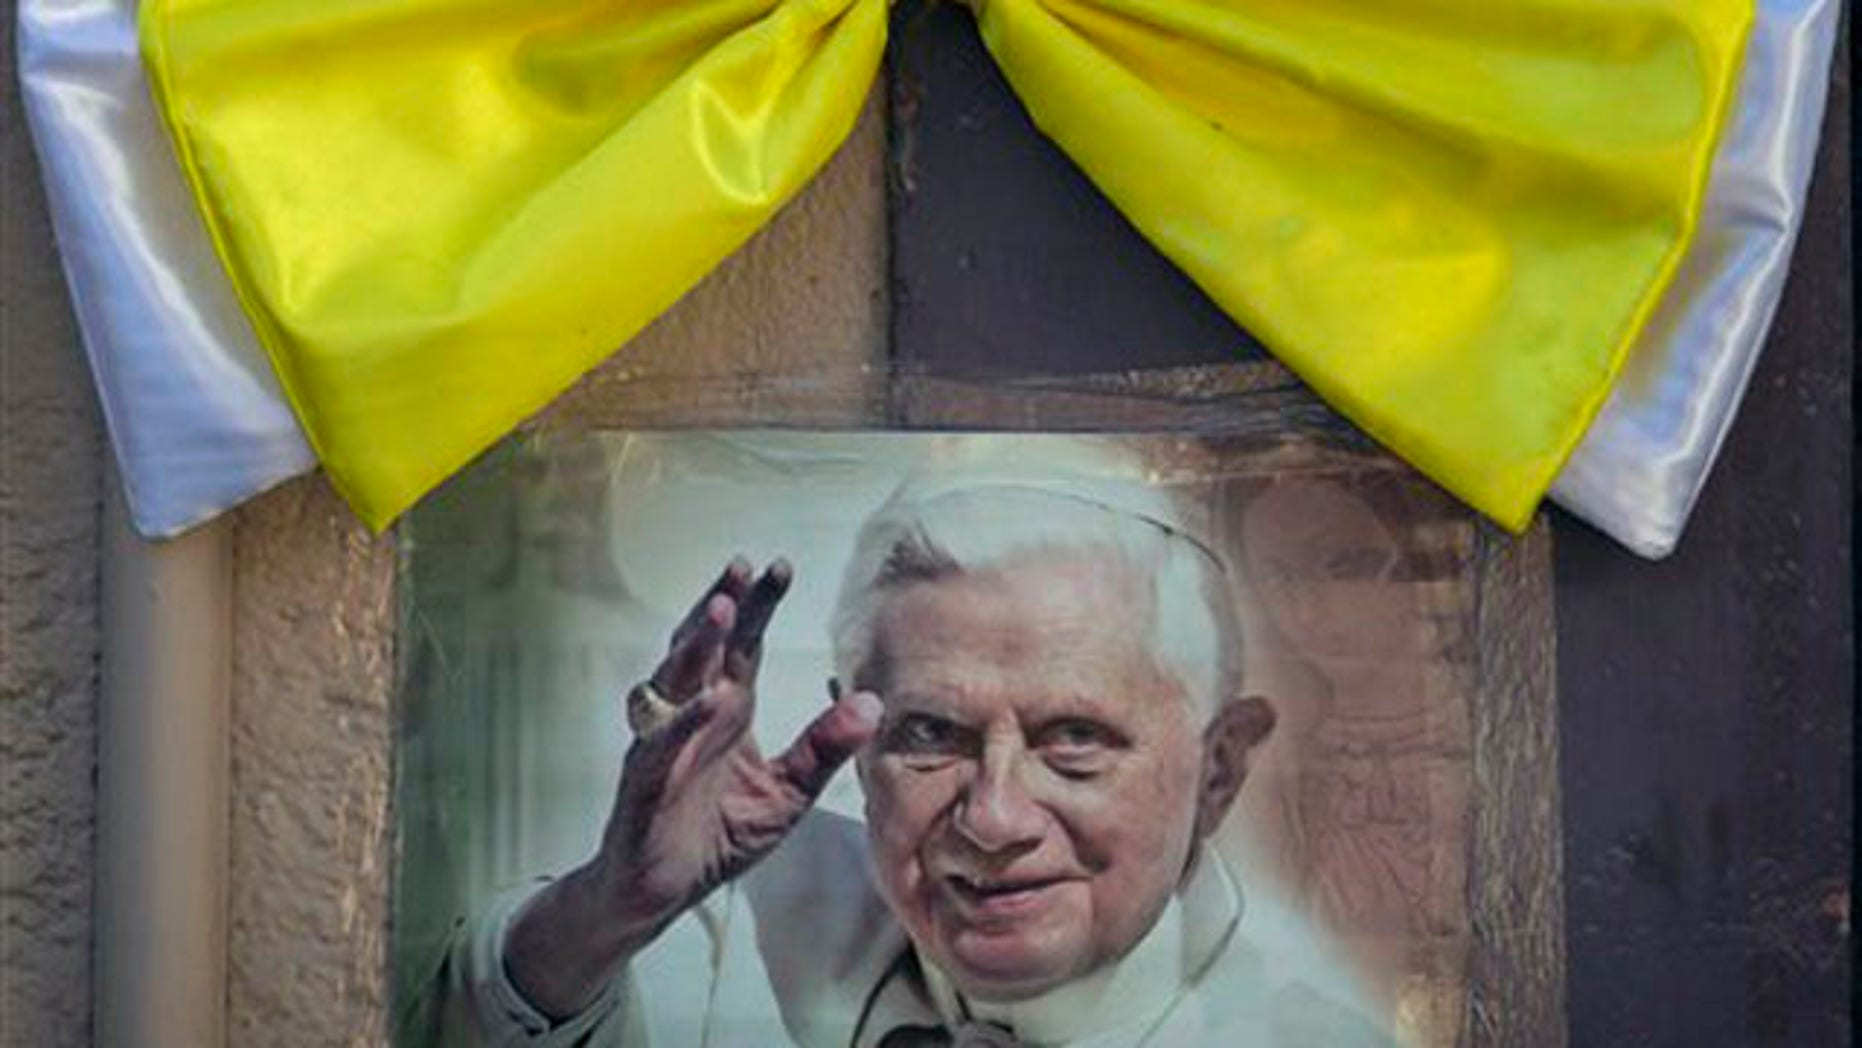 March 22, 2012: An image of Pope Benedict XVI is taped to a wall, topped with a Vatican-colored bow, in Leon, Mexico.